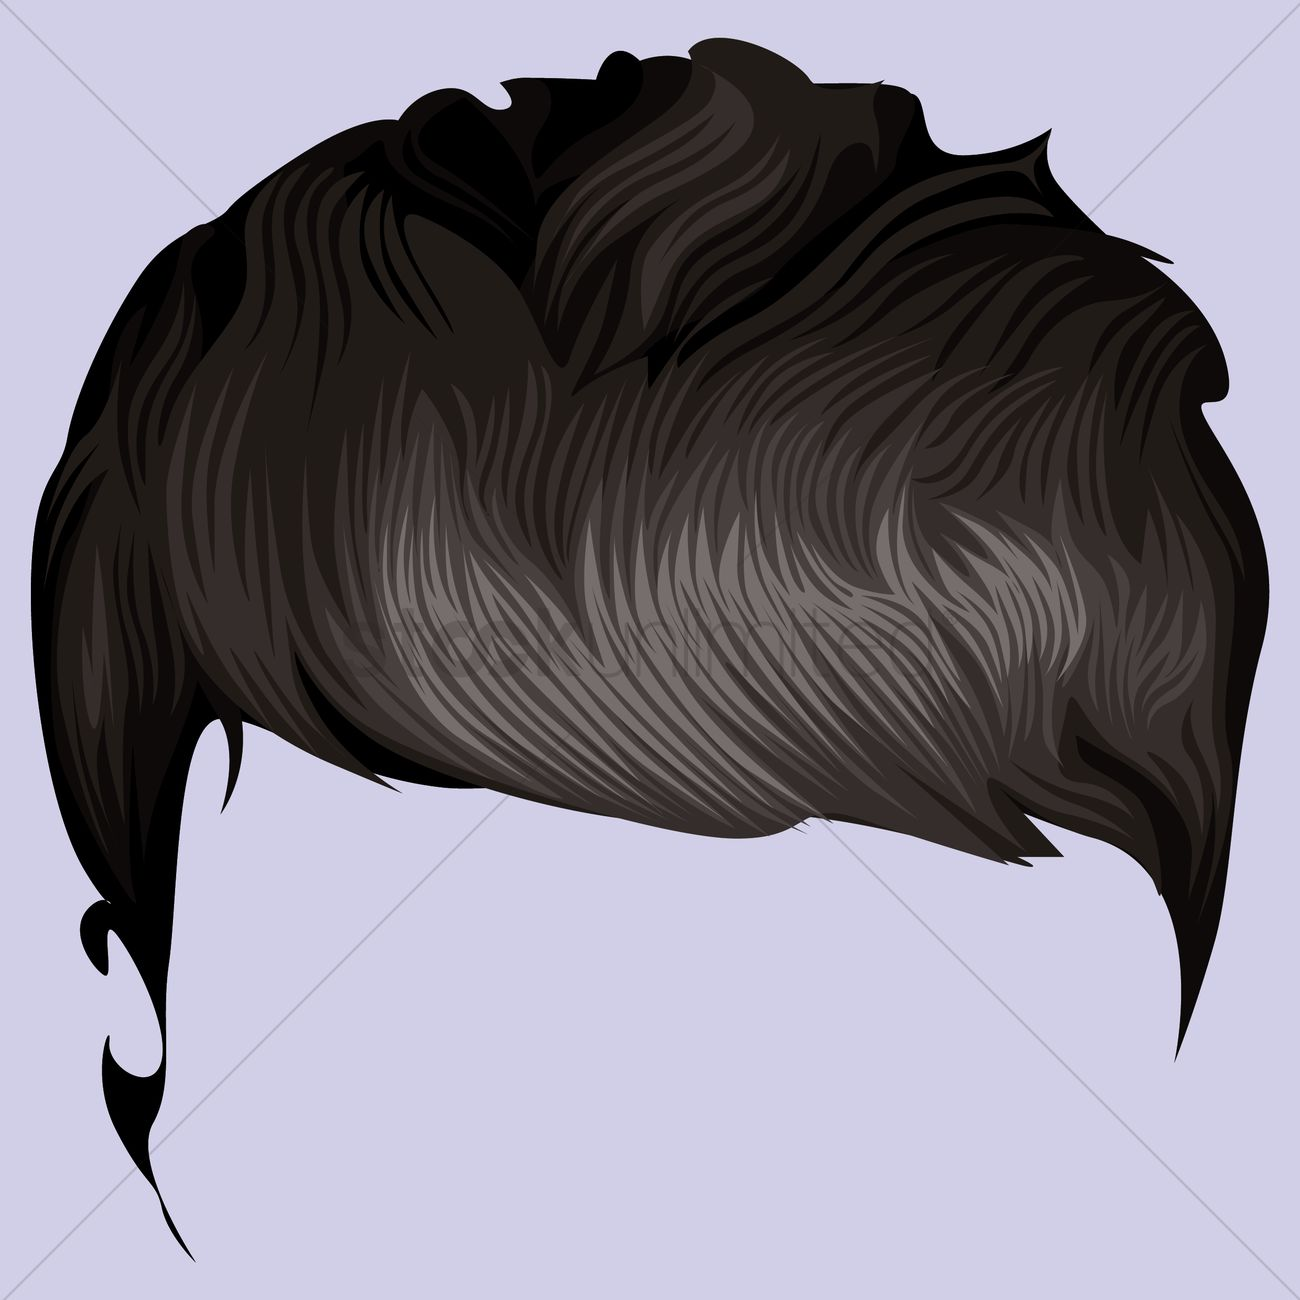 Hair style Vector Image - 1459723 | StockUnlimited Men Hair Clipart